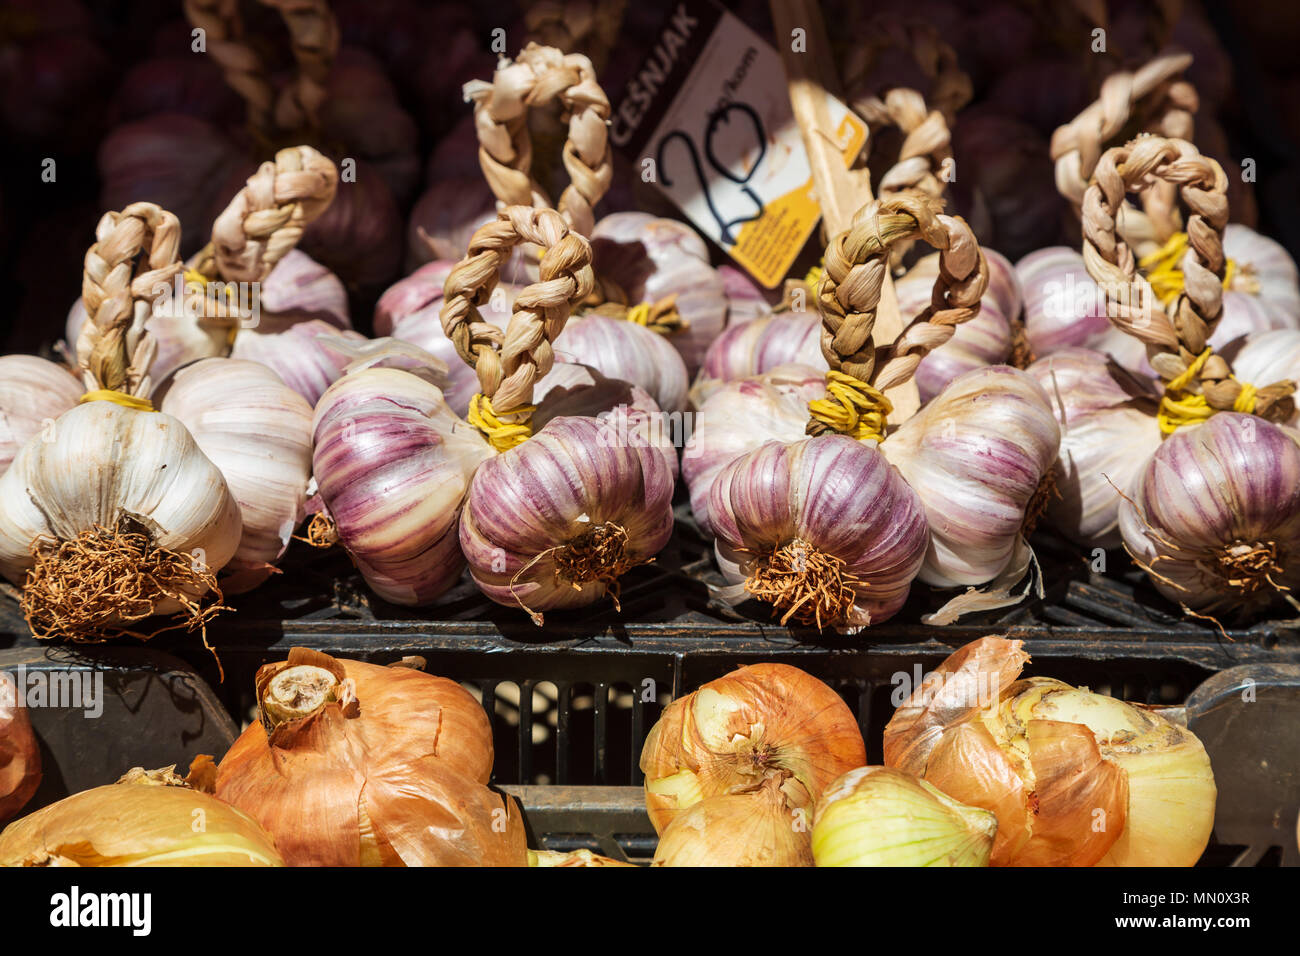 Garlic on sale at market stall, Pula Croatia - Stock Image